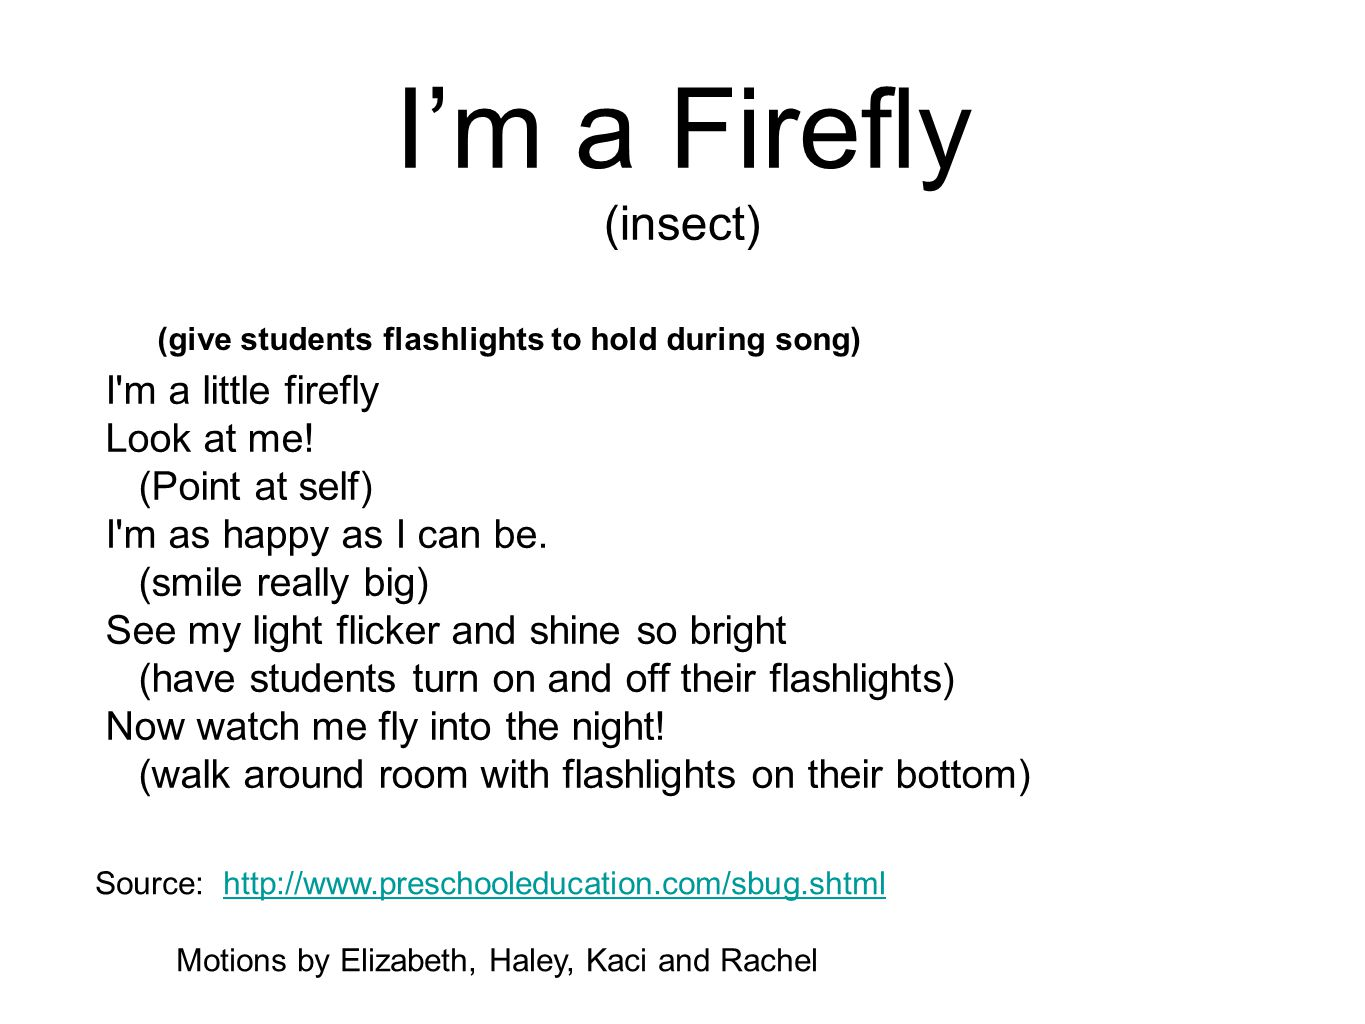 (give students flashlights to hold during song)